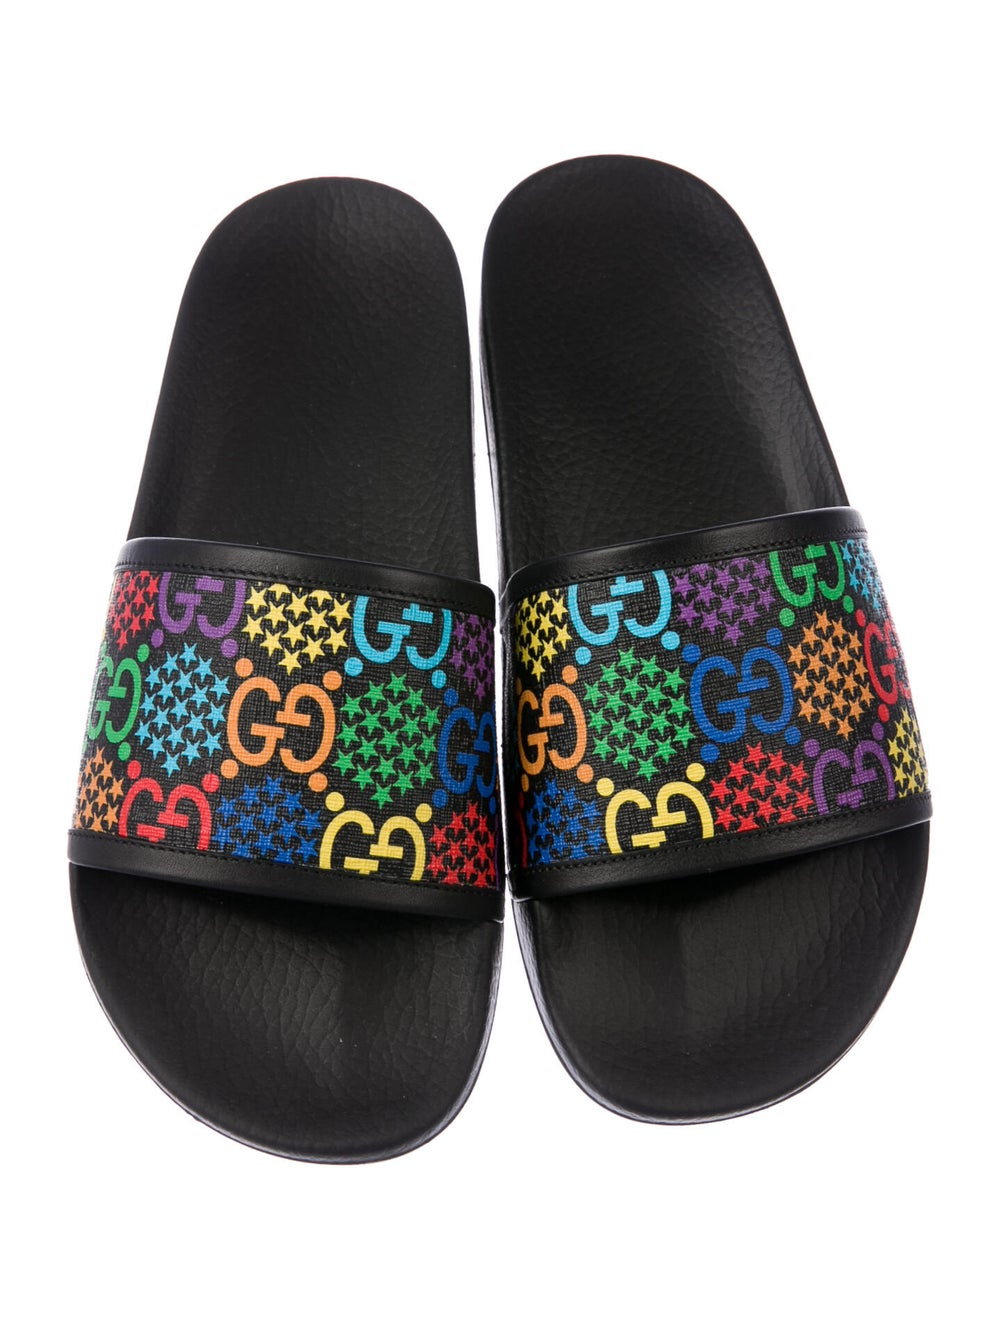 Gucci Psychedelic Printed Slides w/ Tags Black - image 3